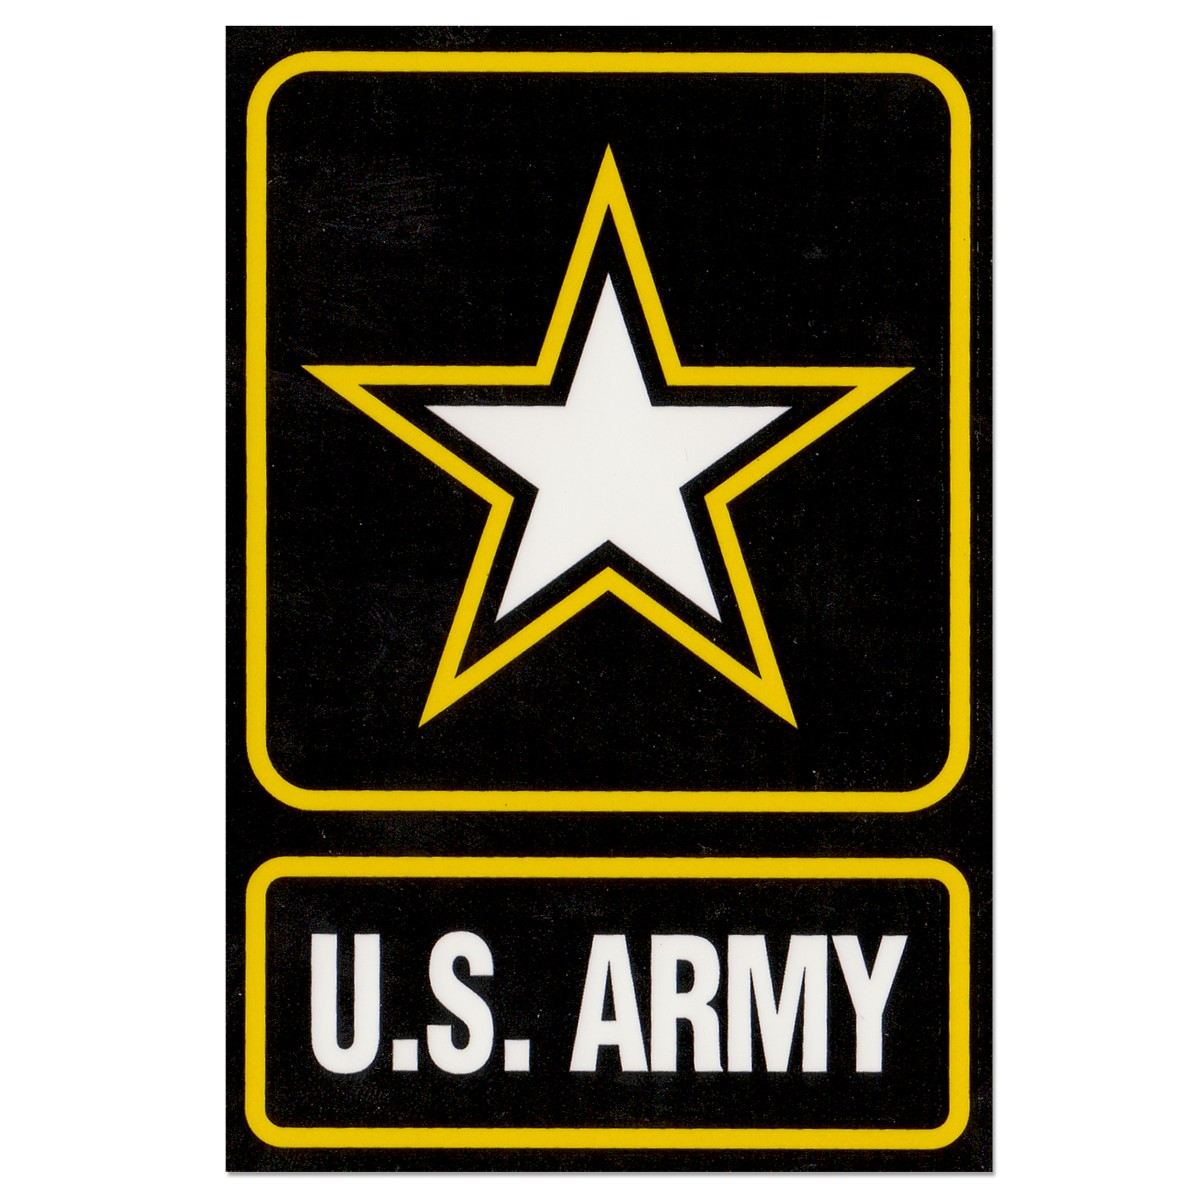 Soldier clipart military emblem Army Military  Army S